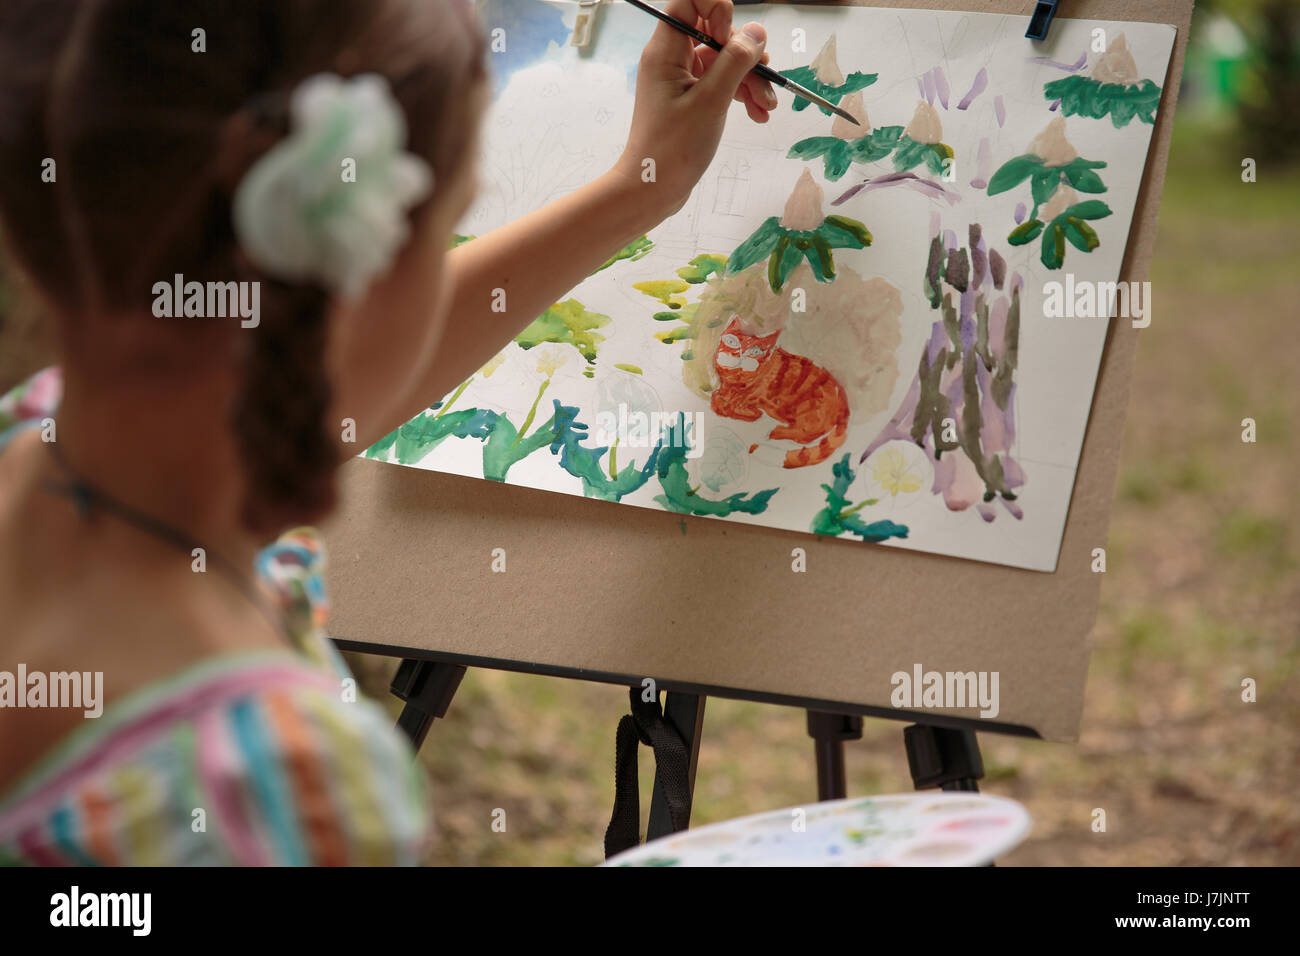 girl paints on an easel in the drawing lesson. Girls Hand draws a pencil tree trunk on a white sheet. Drawing lesson - Stock Image